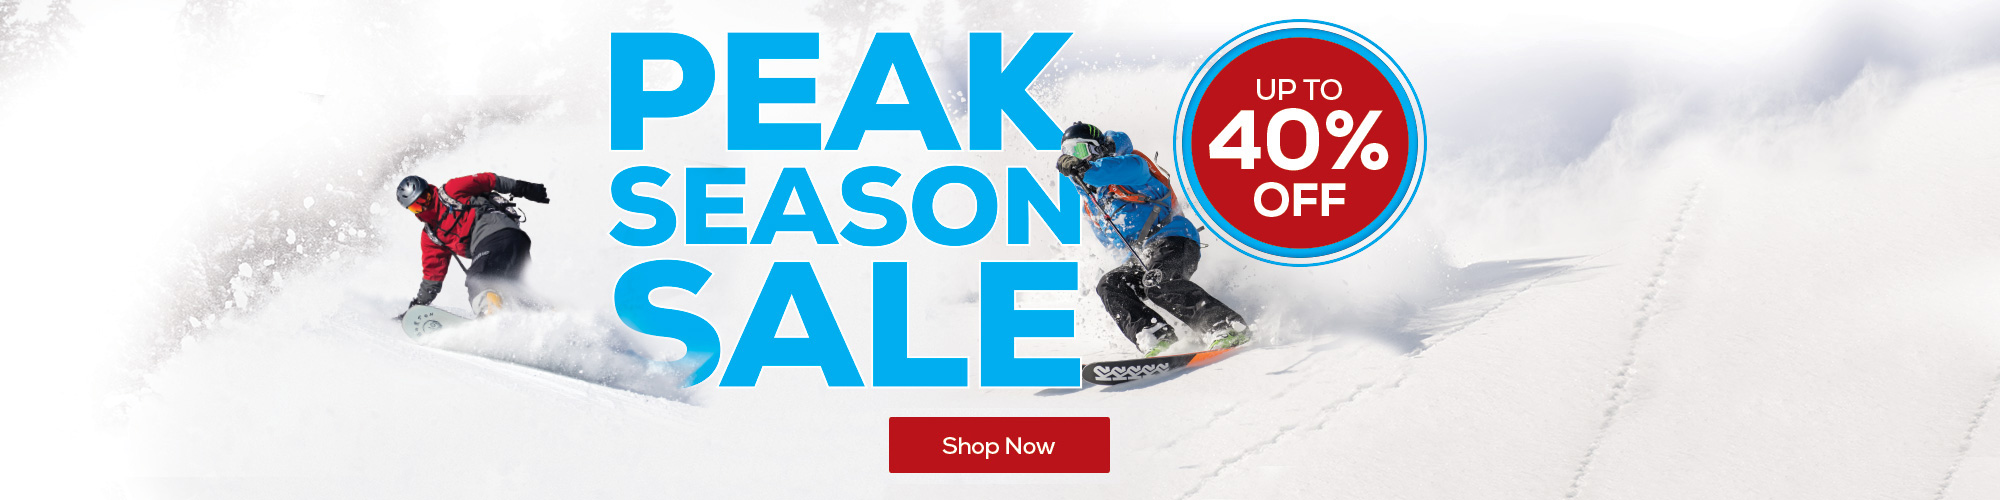 Peak Season Ski Sale. Up to 40% Off